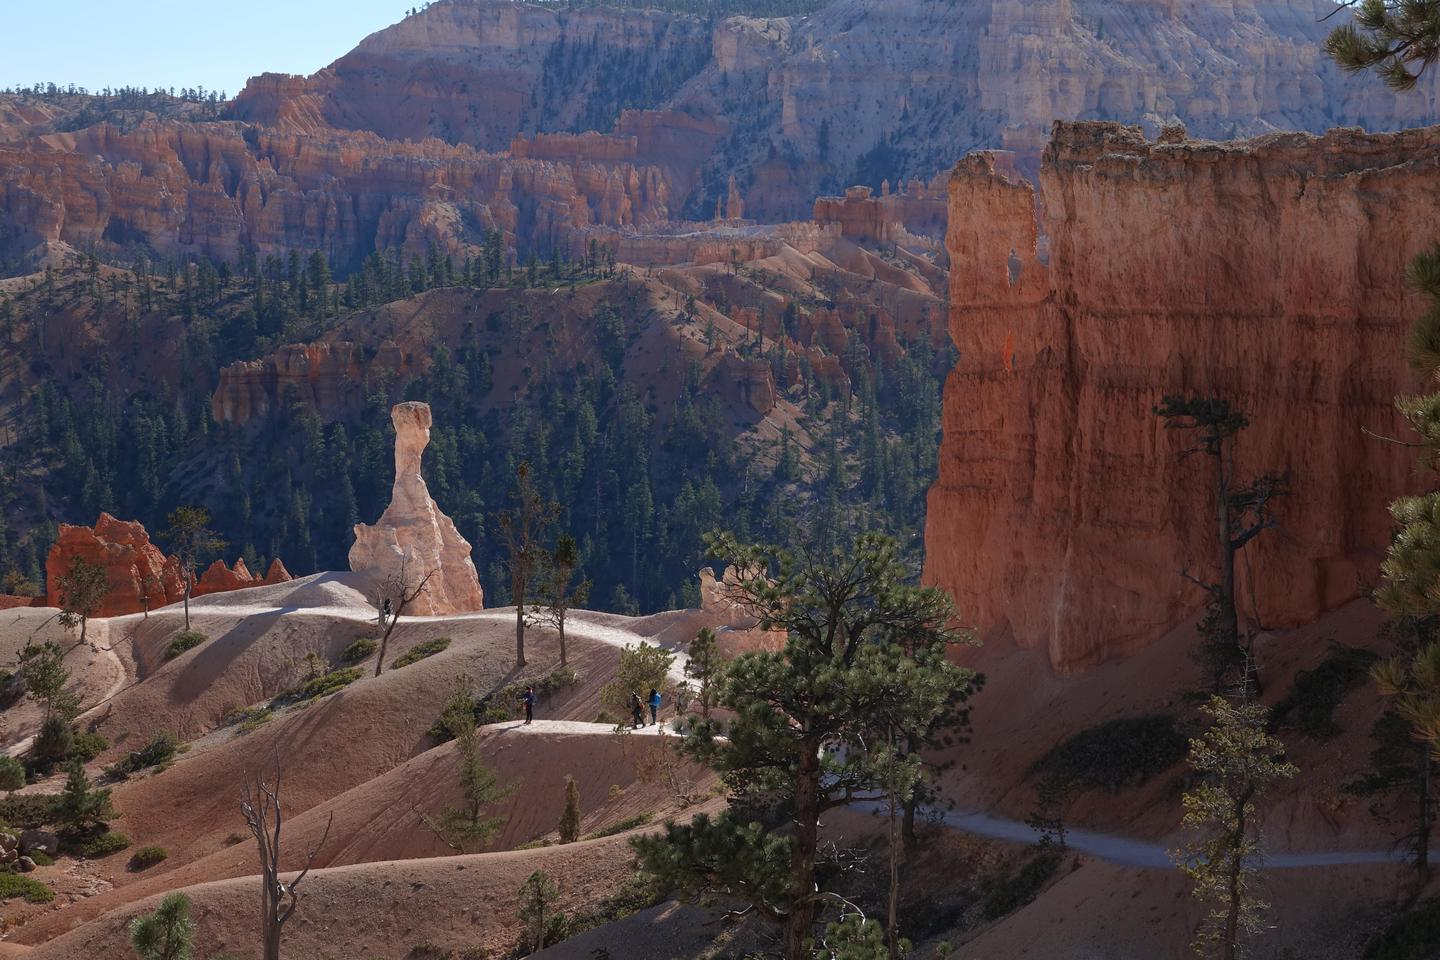 Queen's Garden TrailMore strenuous trails below the rim provide up-close views of the hoodoo rock spires, while easier walks along the rim give perspective from above.